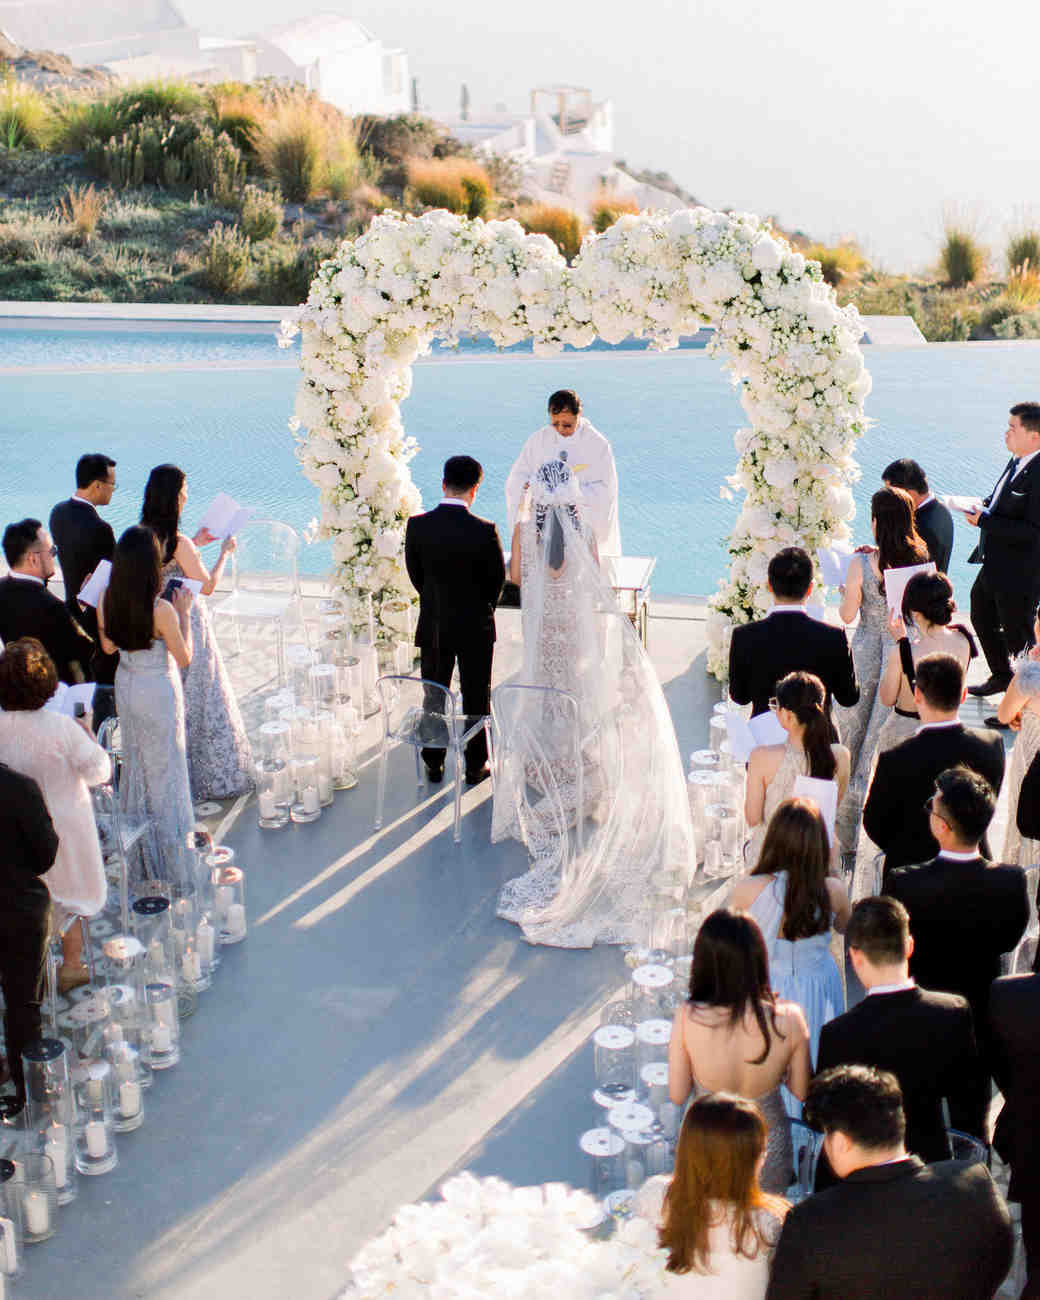 angie prayogo greece wedding outdoor ceremony couple flower arch